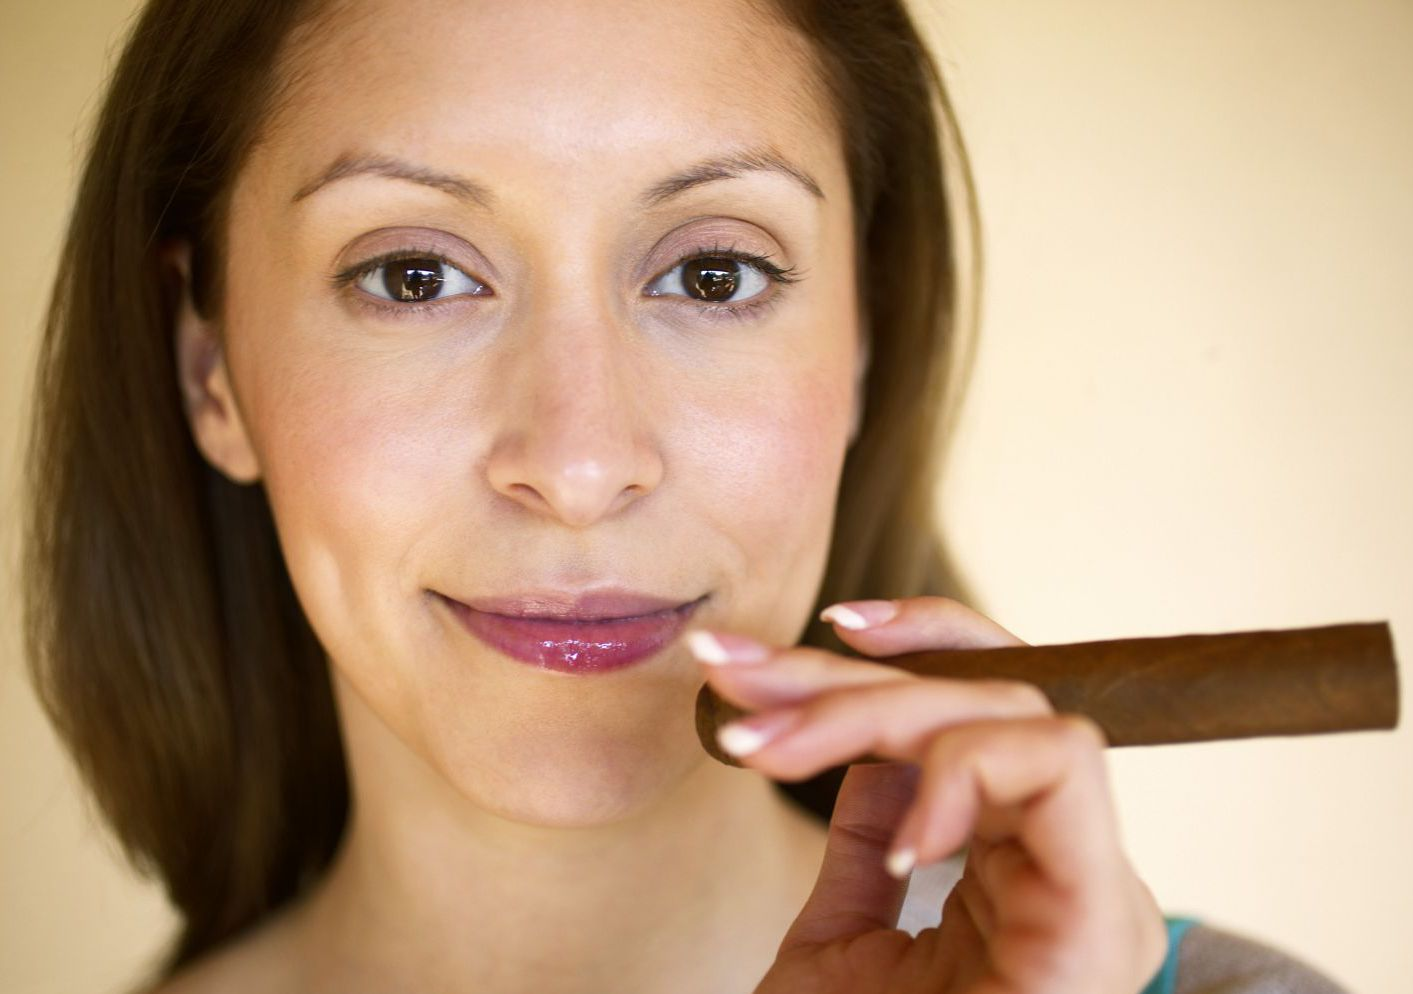 Woman smoking a cigar in a tobacco products shop in Anchorage, AK